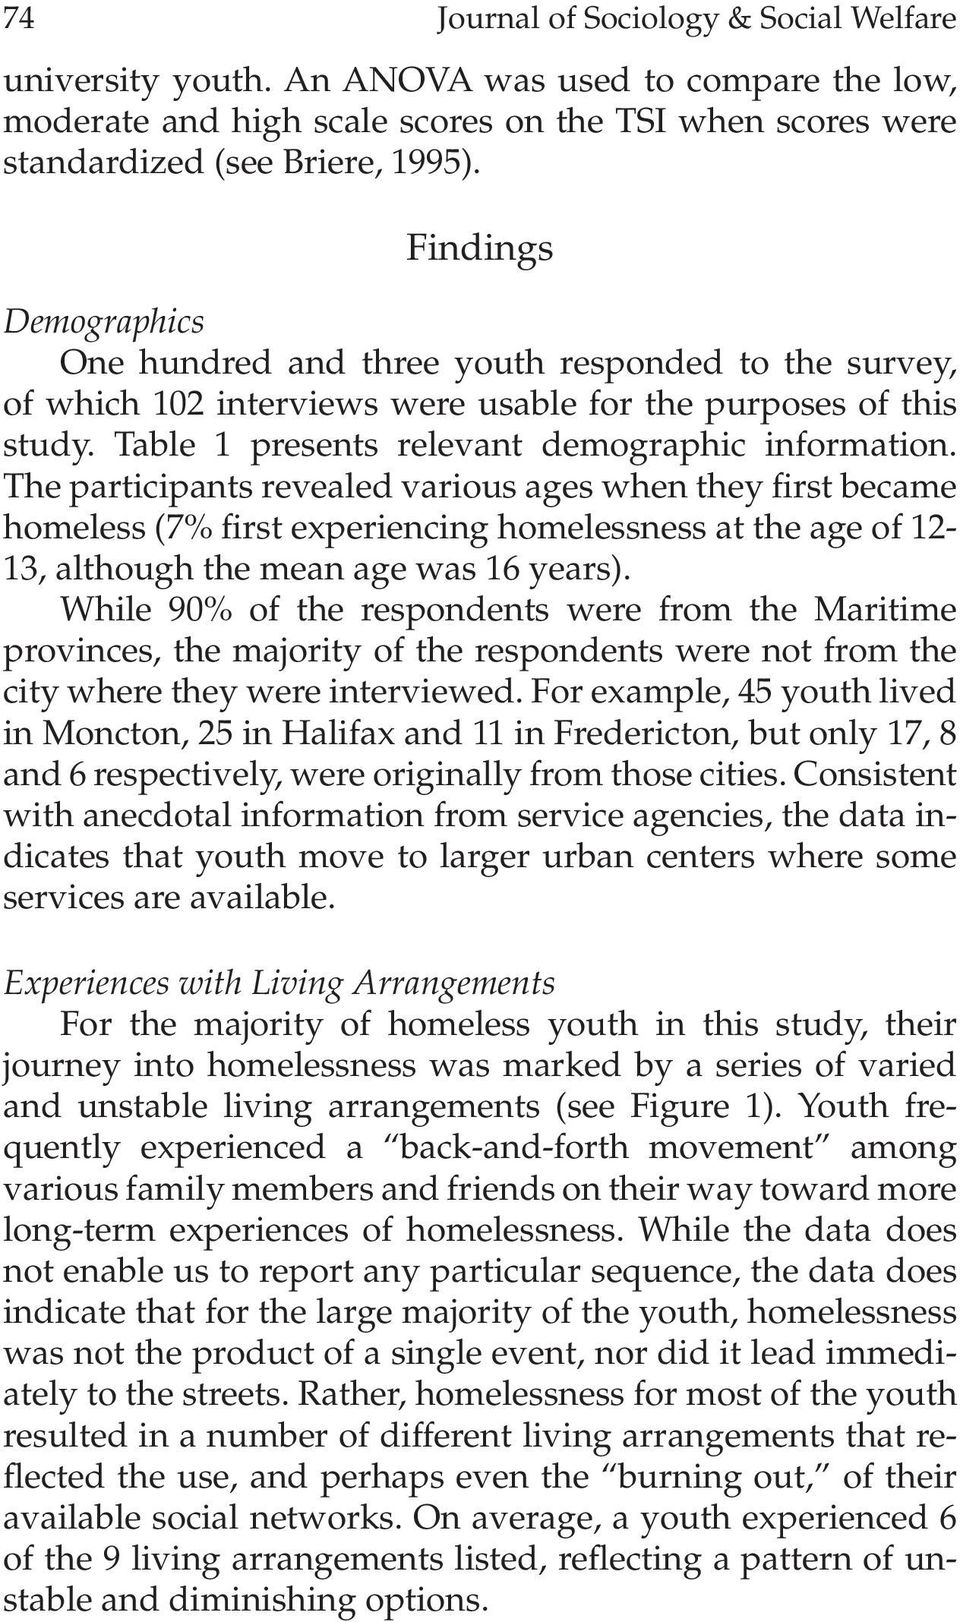 The participants revealed various ages when they first became homeless (7% first experiencing homelessness at the age of 12-13, although the mean age was 16 years).